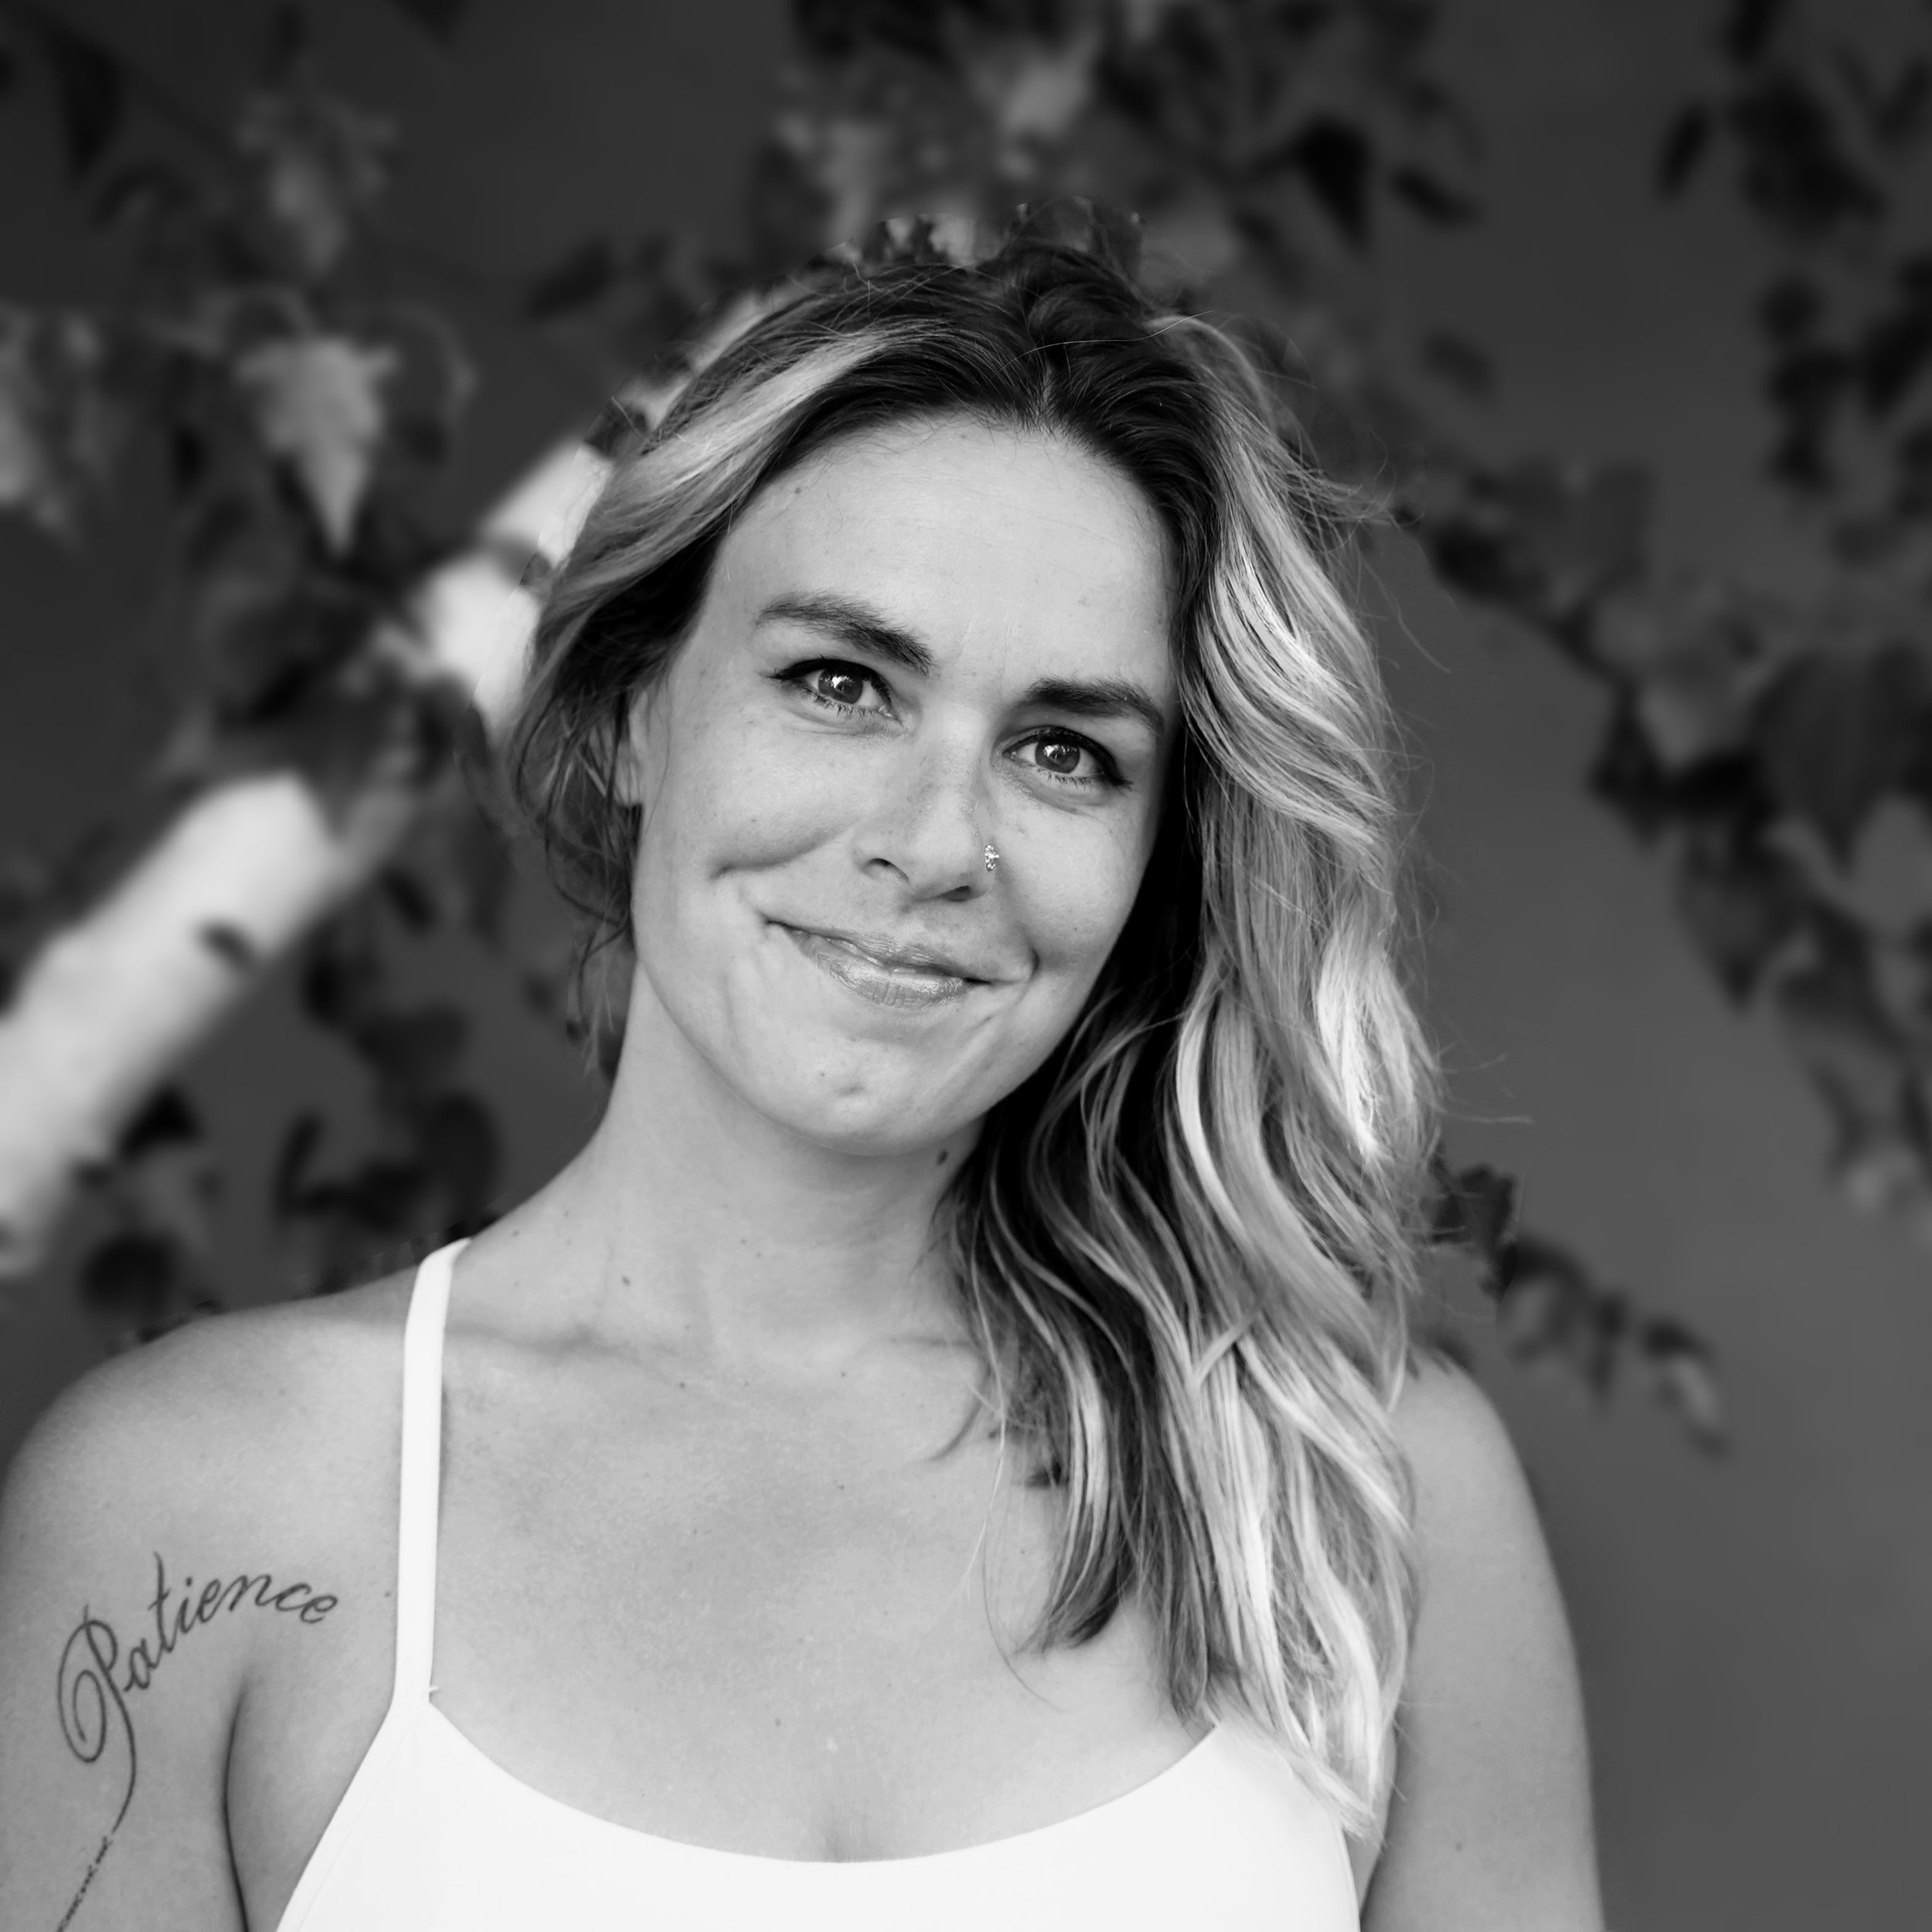 jessica mcmillan   Jessica teaches both heated (90 degrees) and non-heated classes (see schedule for details). Expect approachable but vigorous flows and tunes that make you want to move.  Read more…